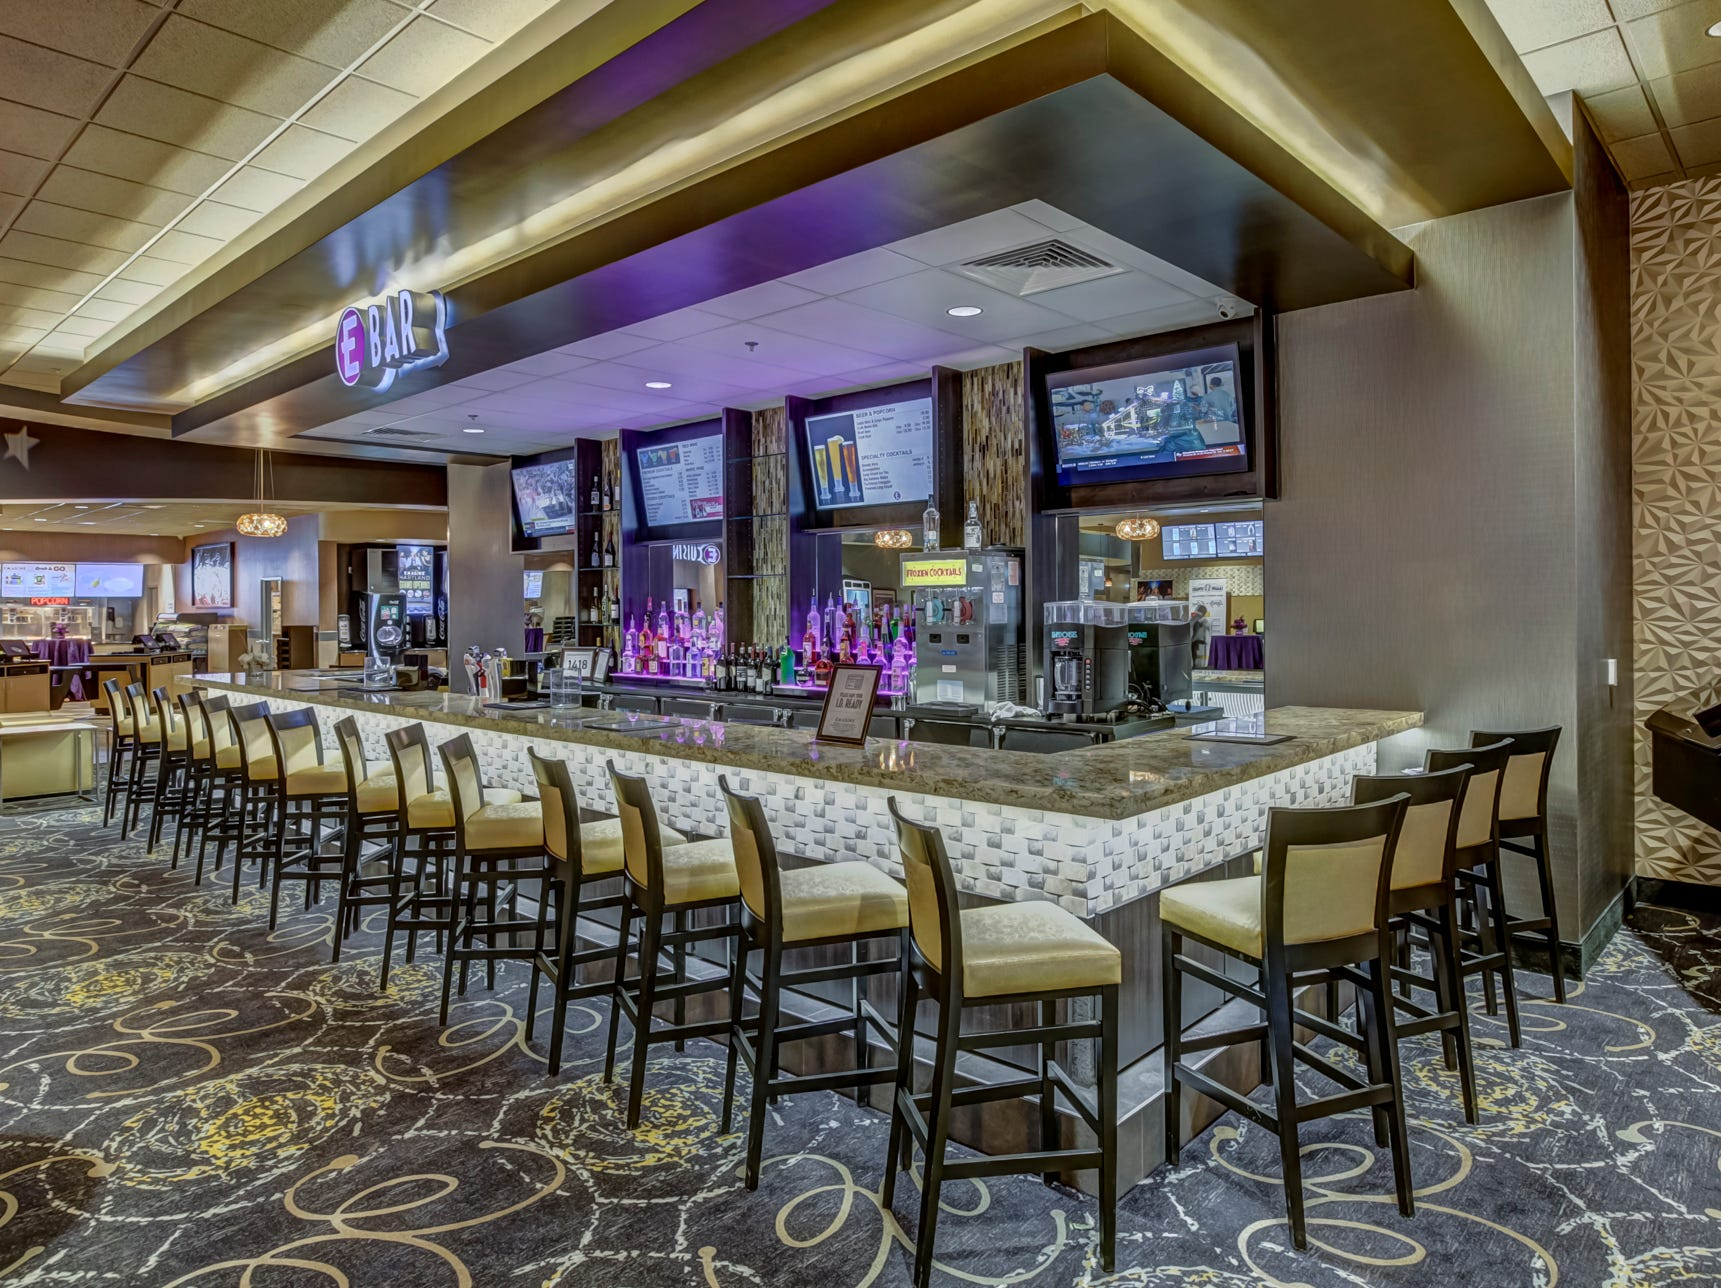 Emagine Entertainment's new movie theater Emagine Hartland features a full-service bar, shown Friday, Dec. 14, 2018.